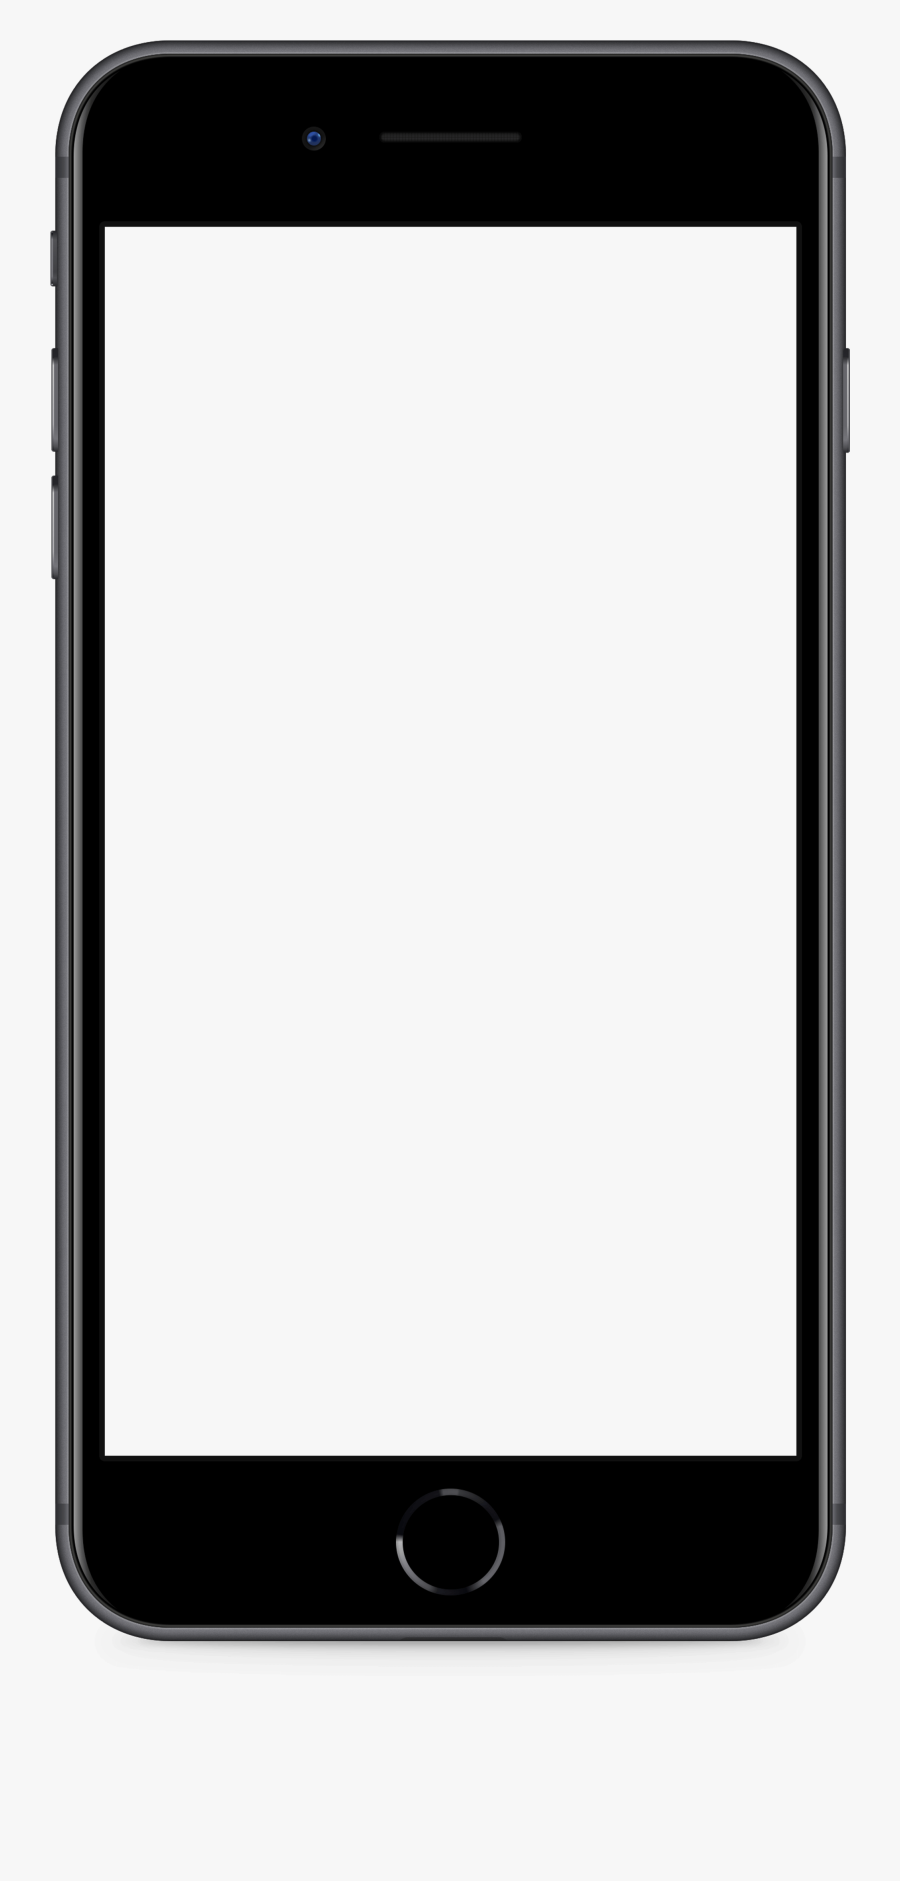 Iphone Screen For Powerpoint , Free Transparent Clipart.